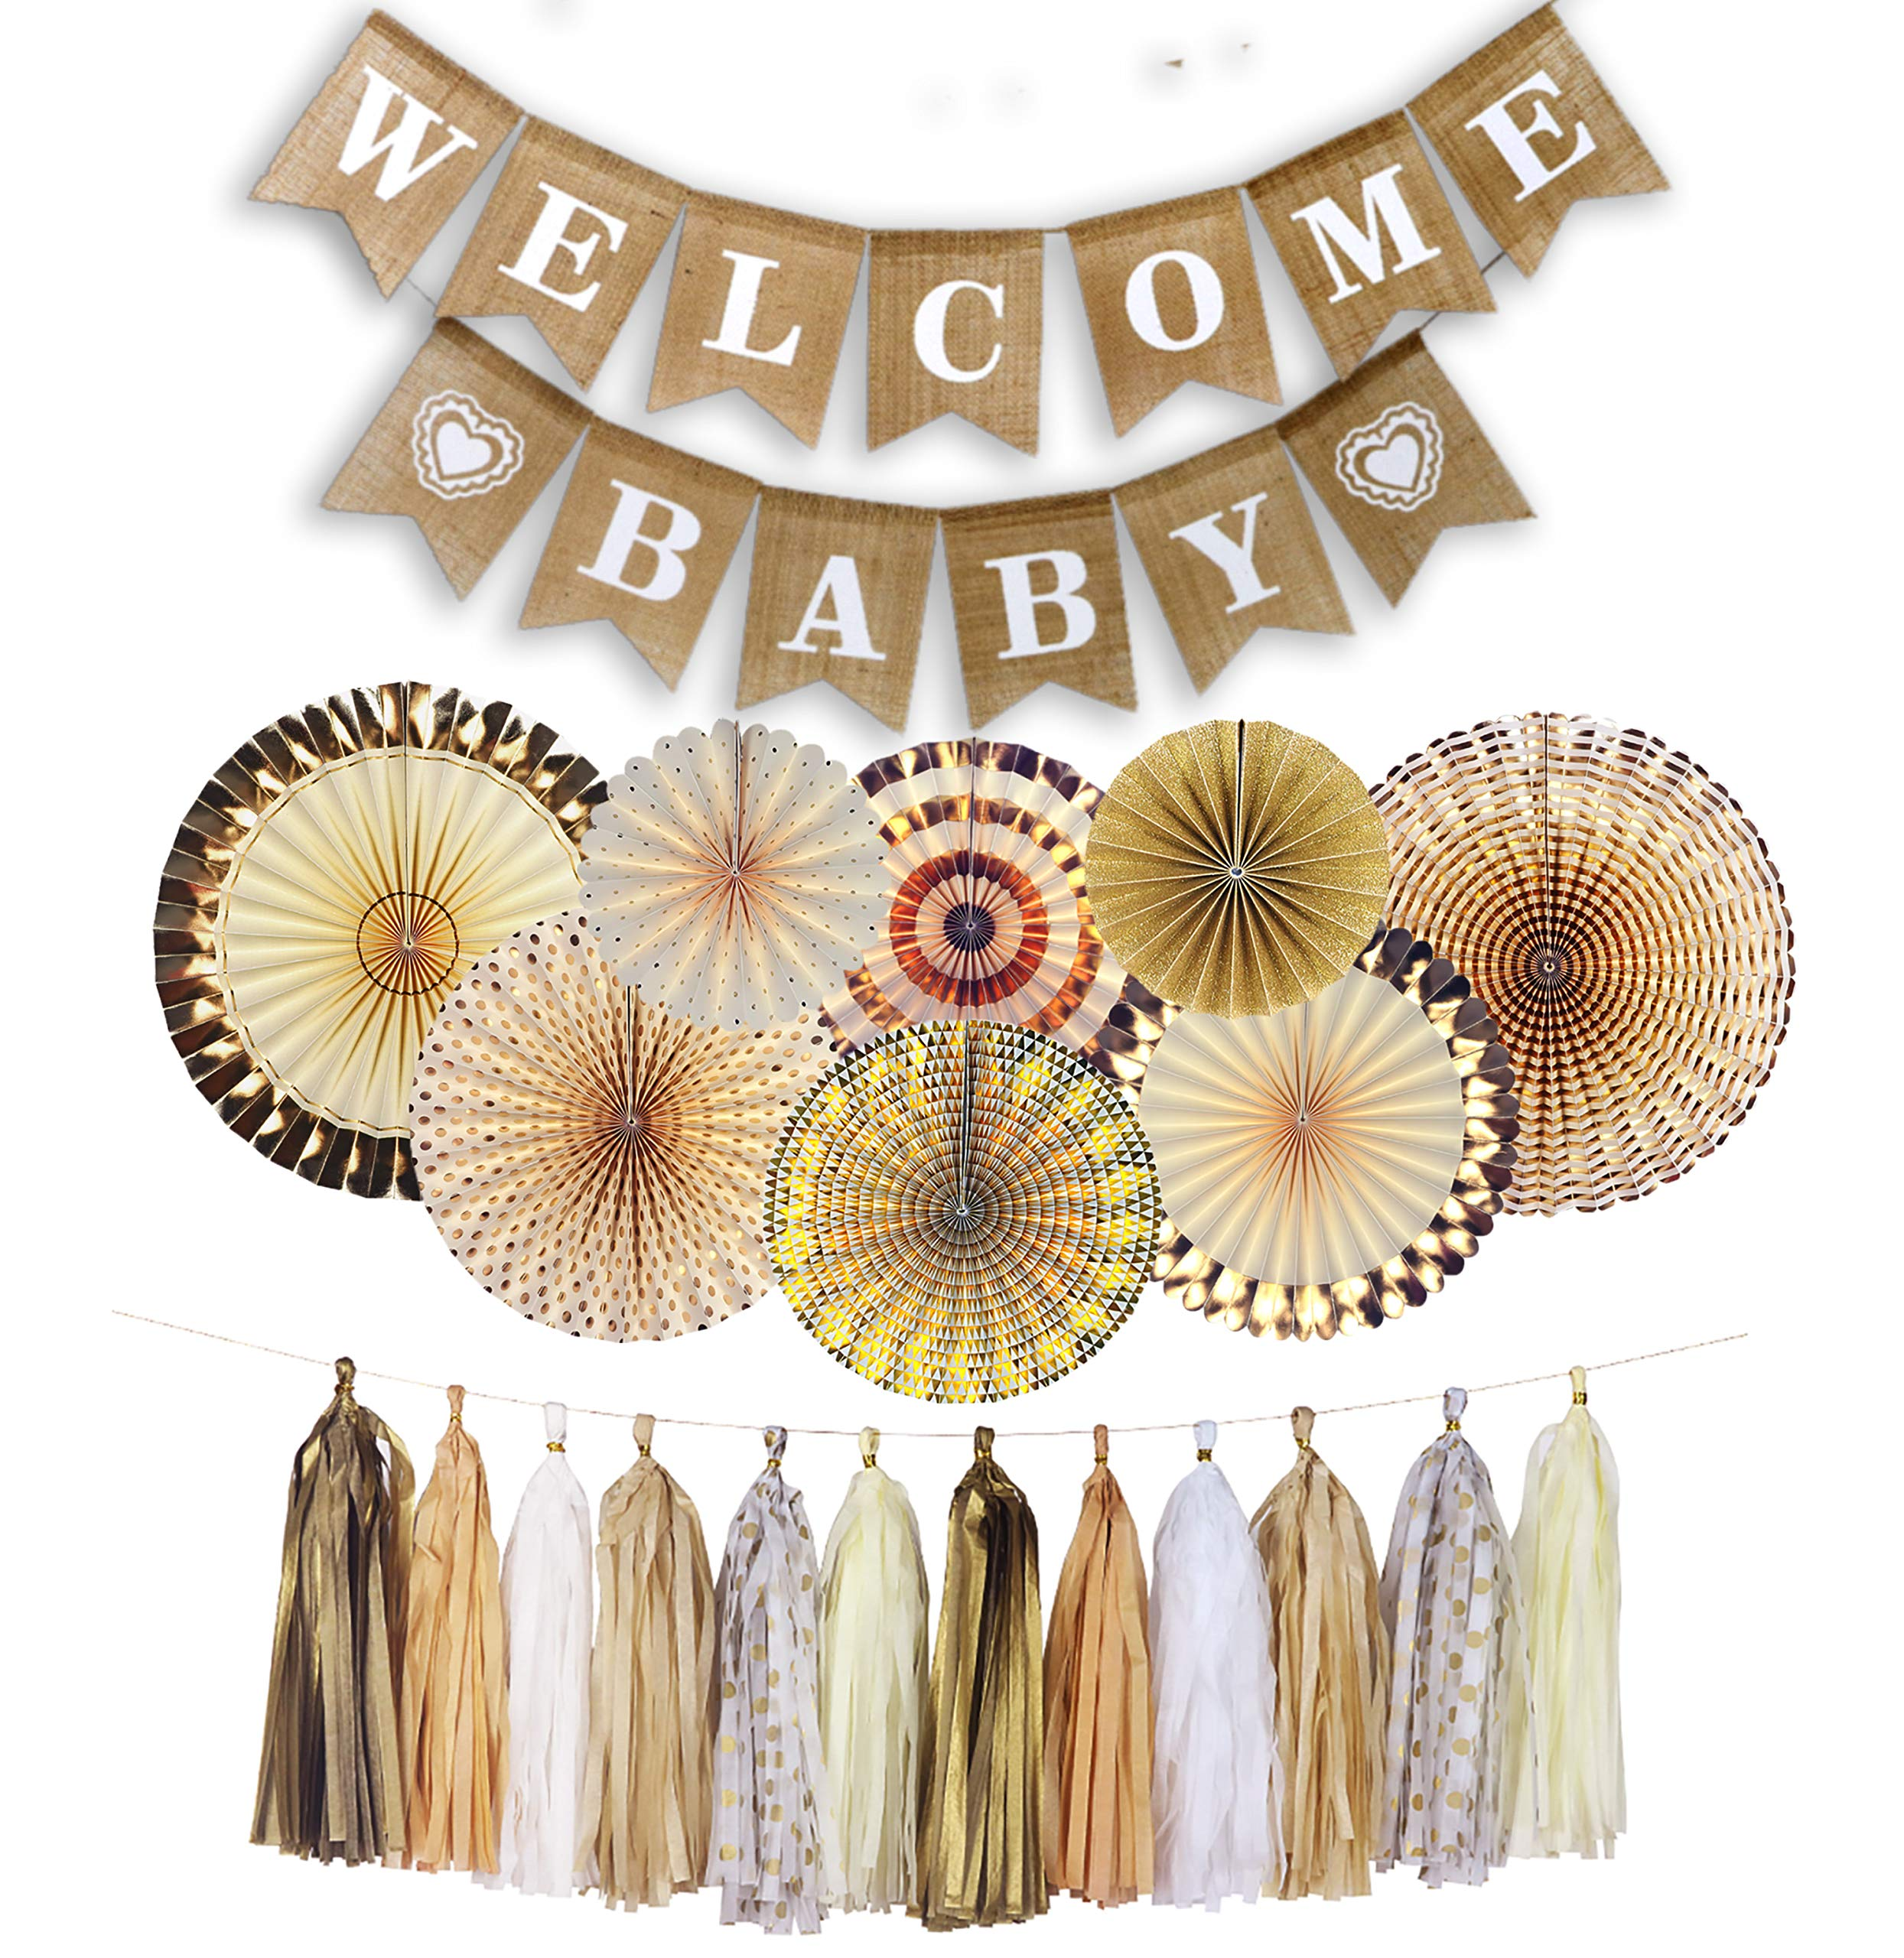 YARA Neutral Baby Shower Decorations for Coed, Unisex, Boy or Girl, Rustic Welcome Baby Banner in Burlap, Tassels, Gold and White Gender Neutral Baby Shower Decor Set, Gold Paper Fans Decorations by Yara Enterprises (Image #2)